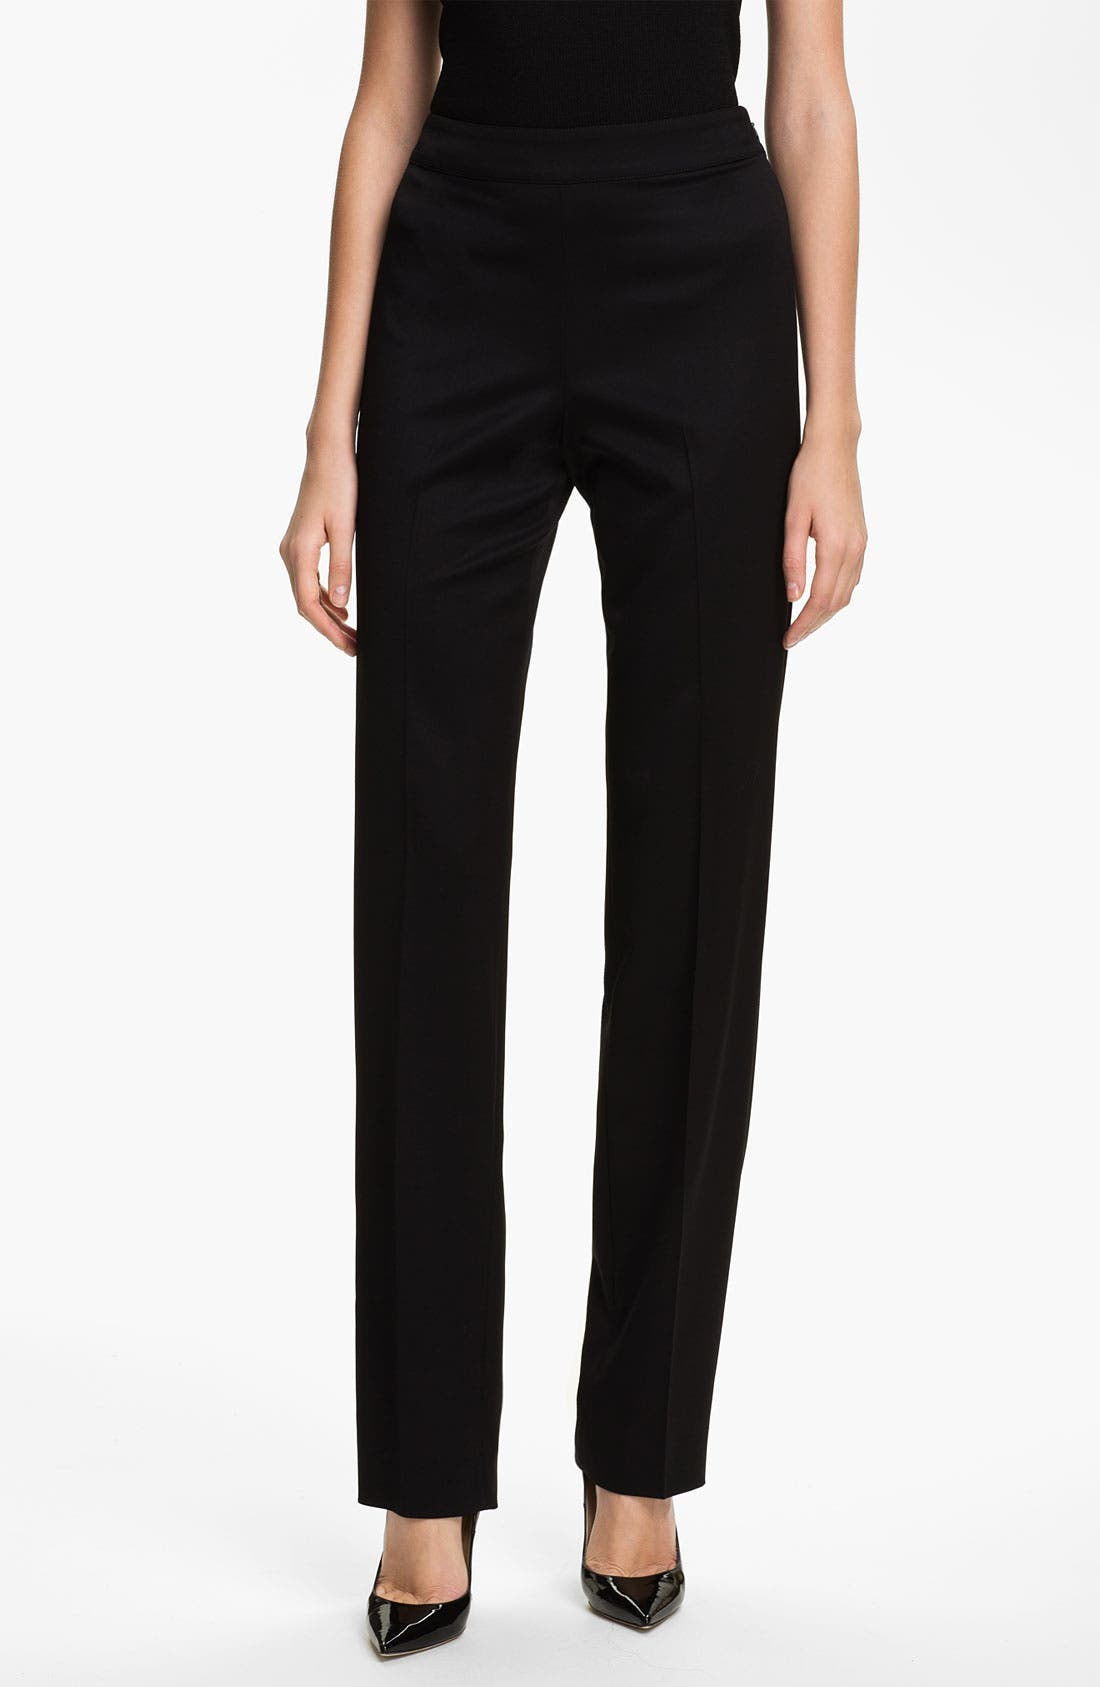 Alternate Image 1 Selected - St. John Collection 'Diana' Stretch Venetian Wool Pants